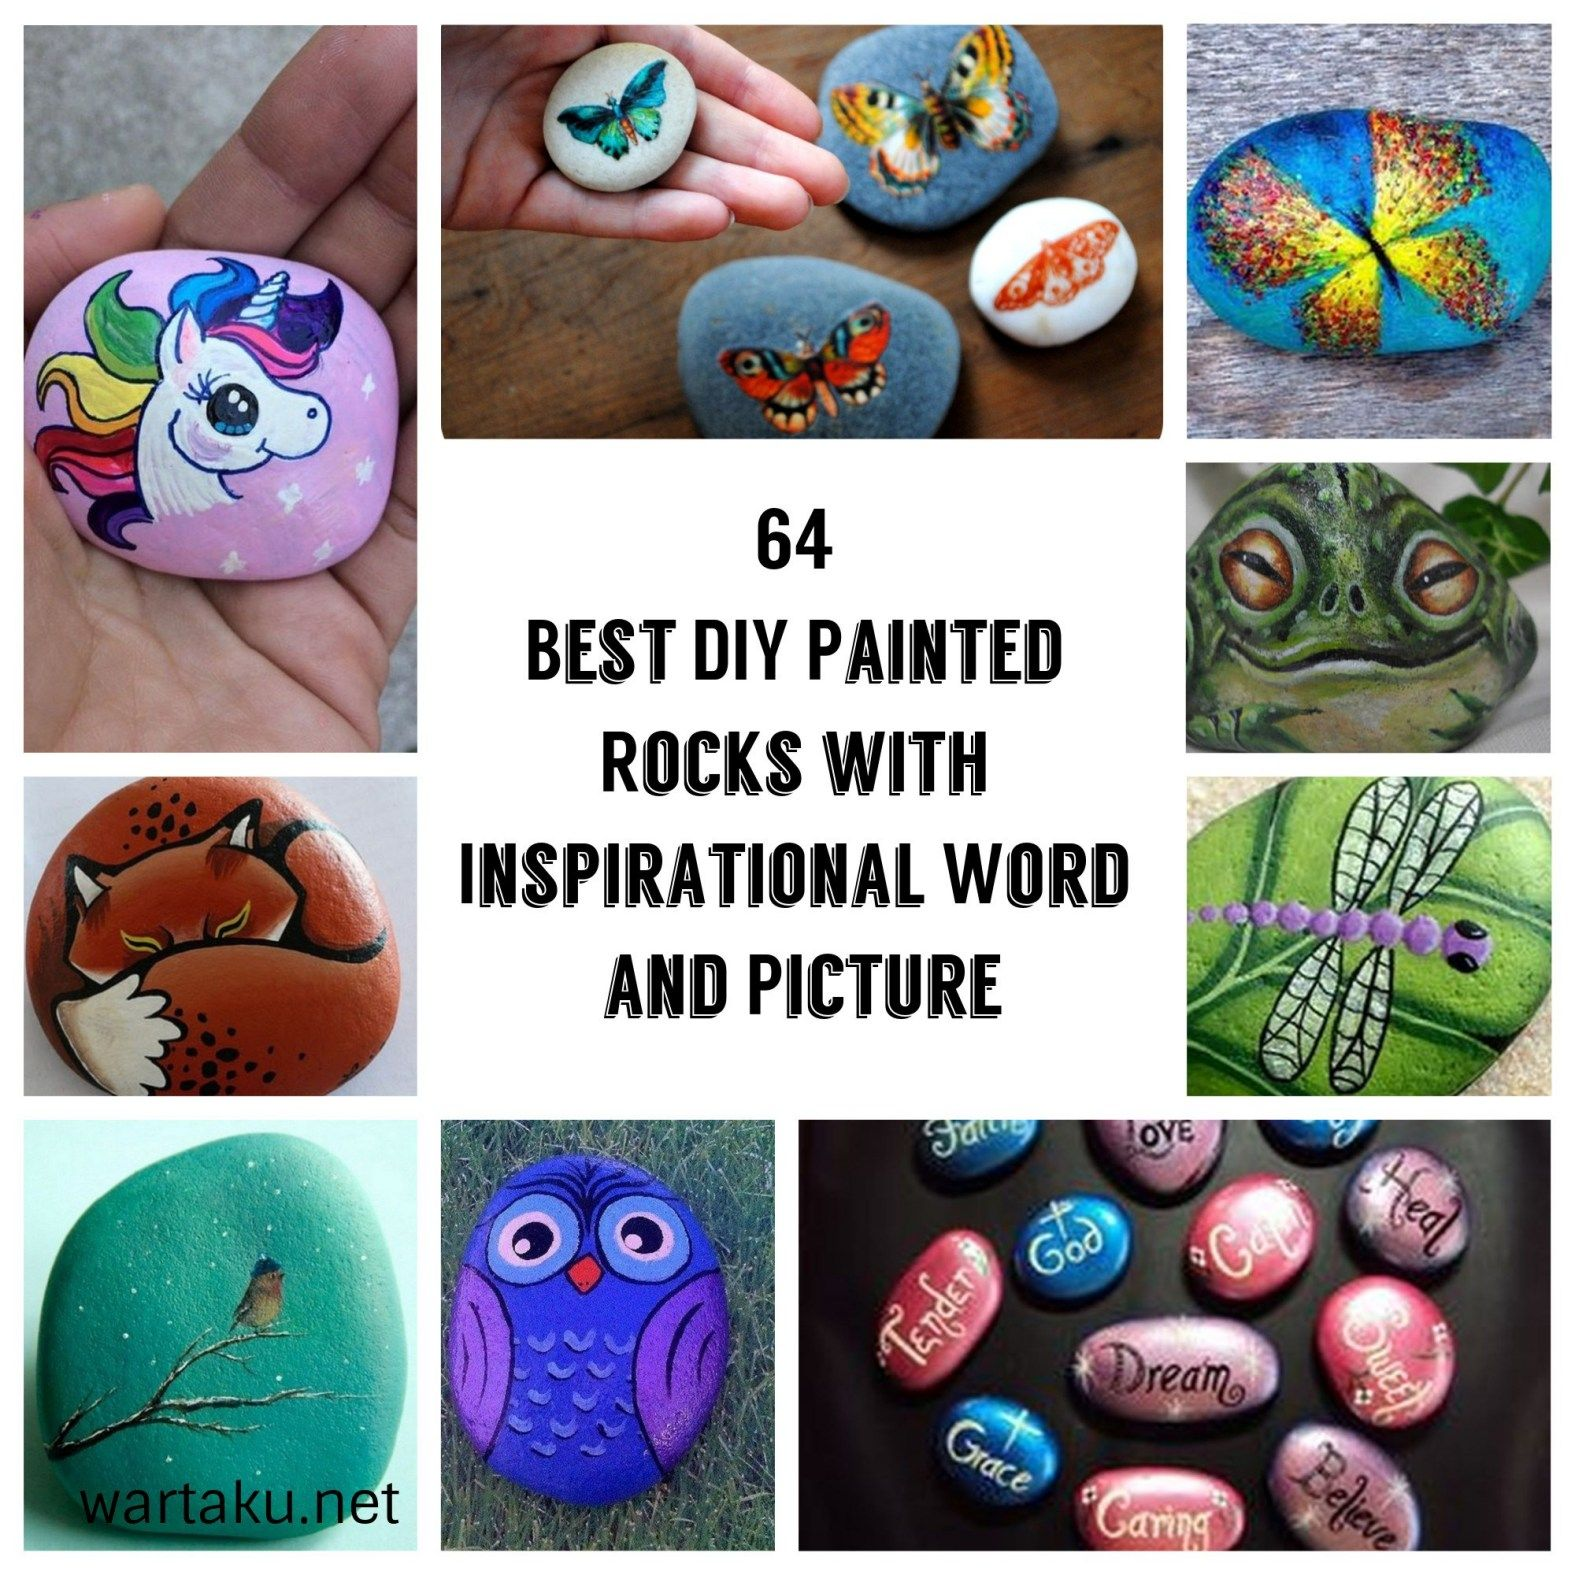 64 Best Diy Painted Rocks With Inspirational Word And Picture is part of Painted rocks diy, Diy painting, Painted rocks, Landscaping with rocks, Painting words, Rock crafts - 64 Best Diy Painted Rocks With Inspirational Word And Picture